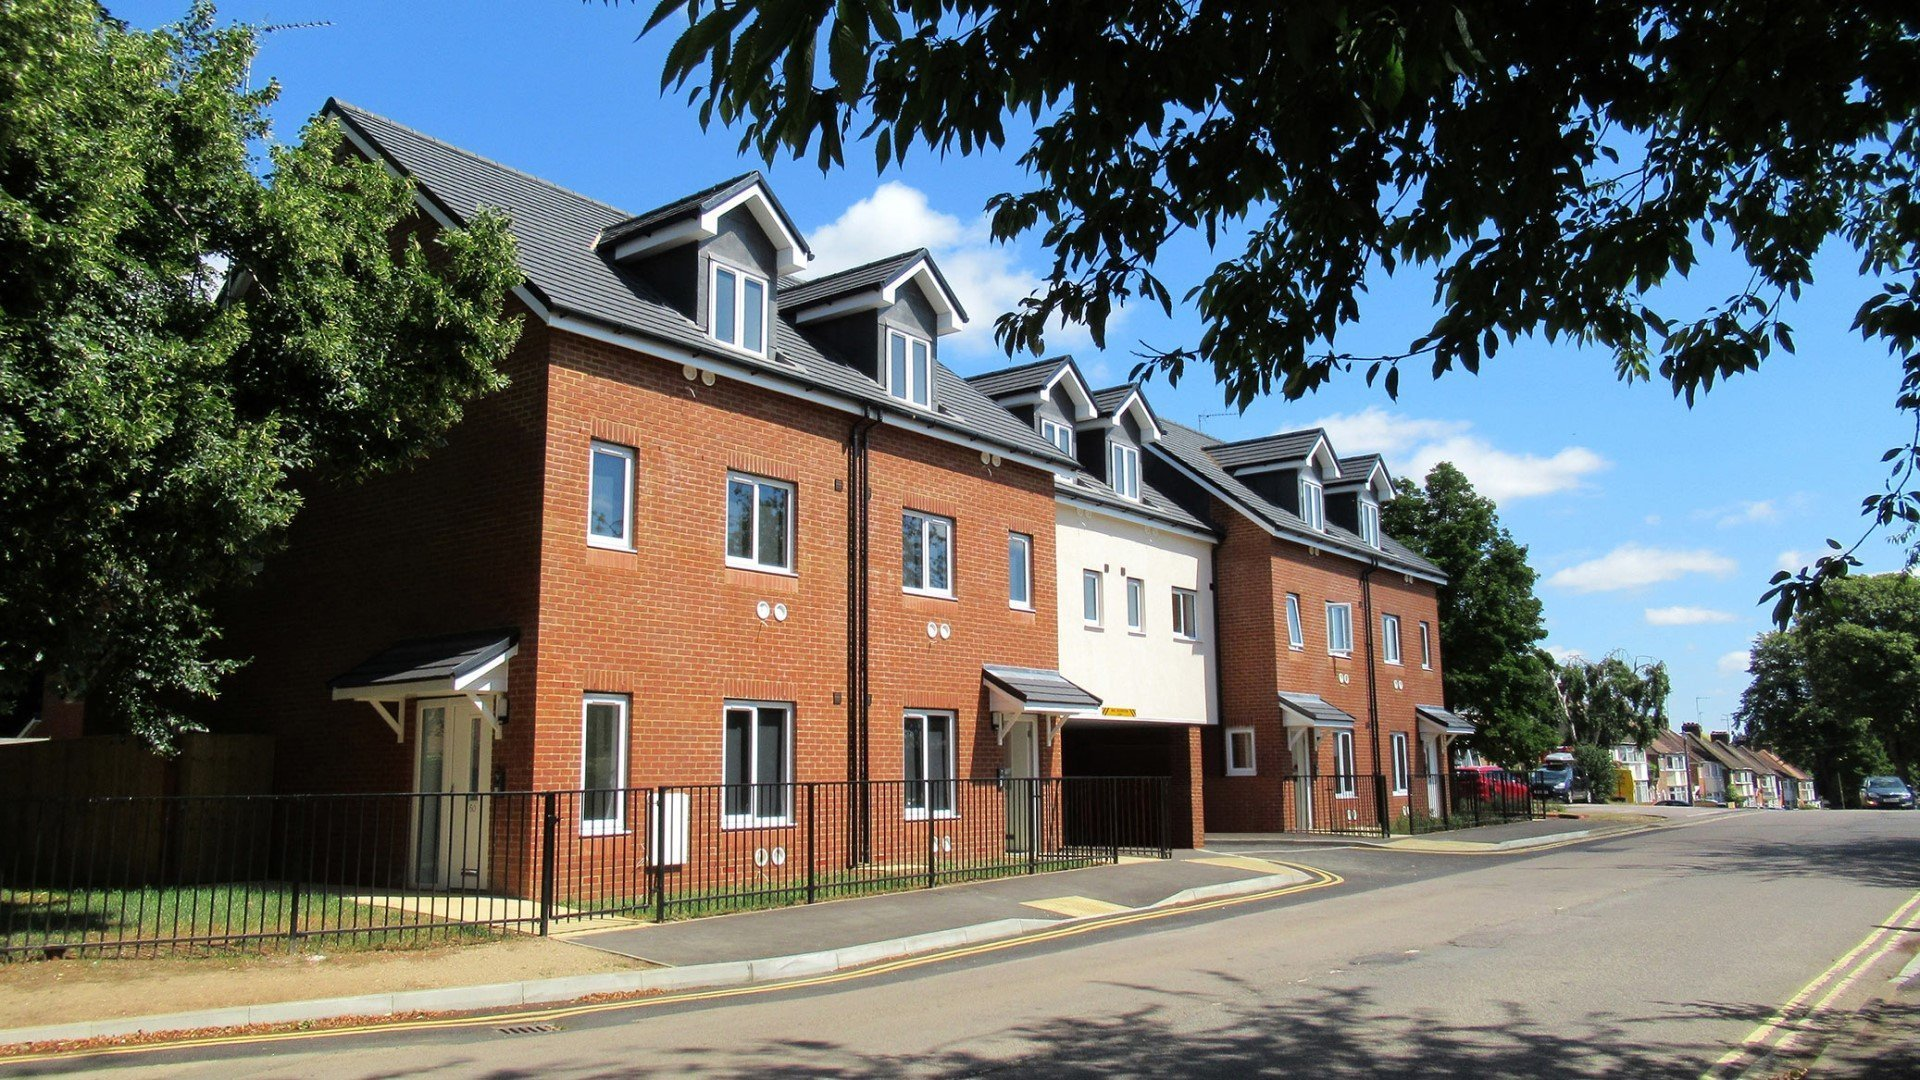 Have your say on Cherwell Council's new draft tenancy strategy